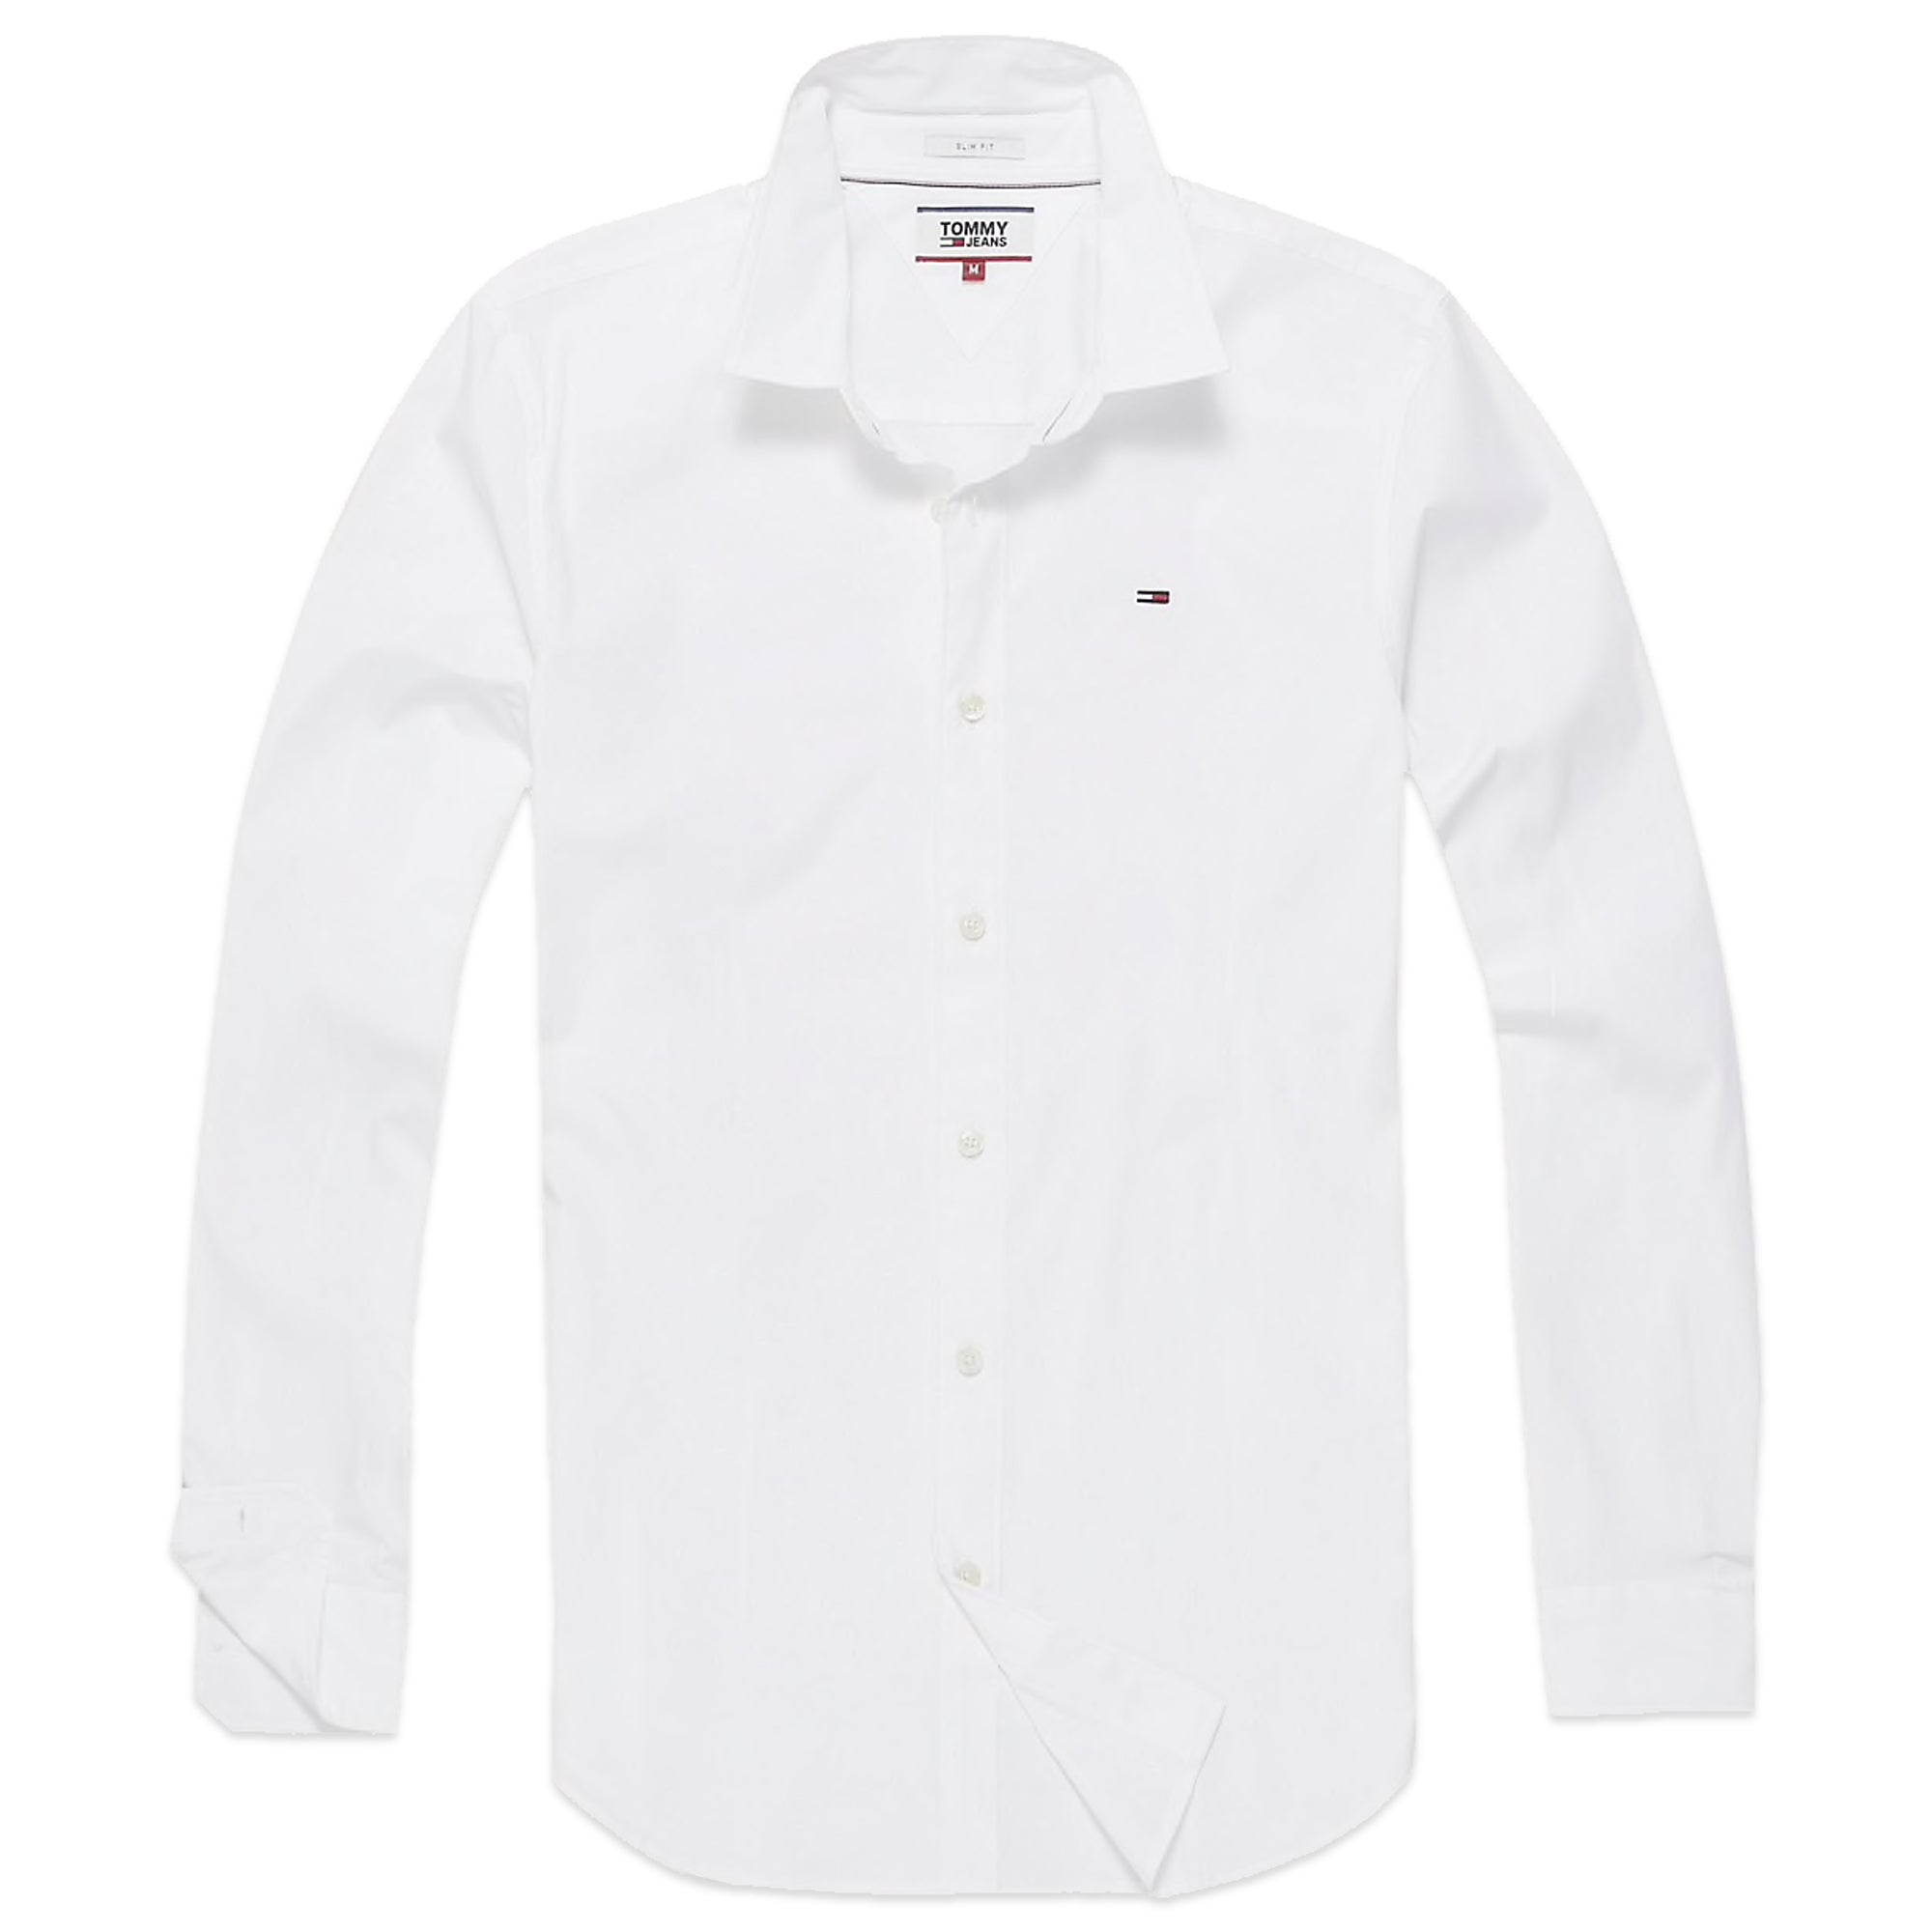 eada0f70 Tommy_Hilfiger_Original_Flag_Stretch_Long_Sleeve_Shirt_White_-_Front.jpg?v=1557391893